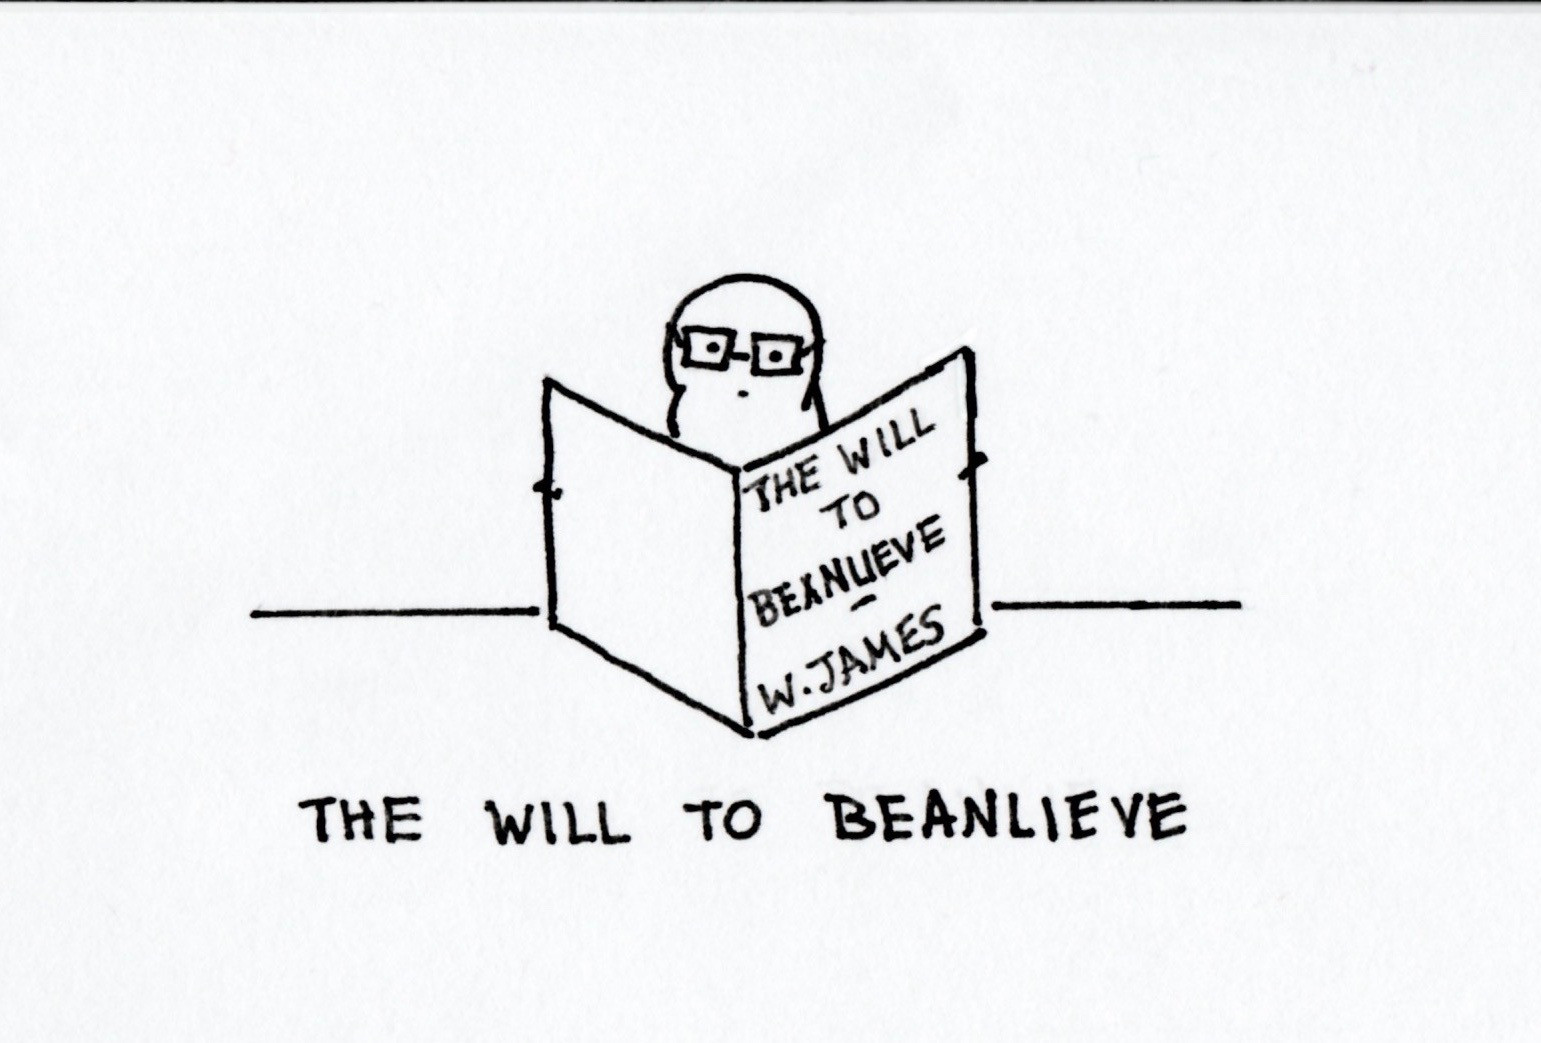 The Will to Beanlieve.jpg